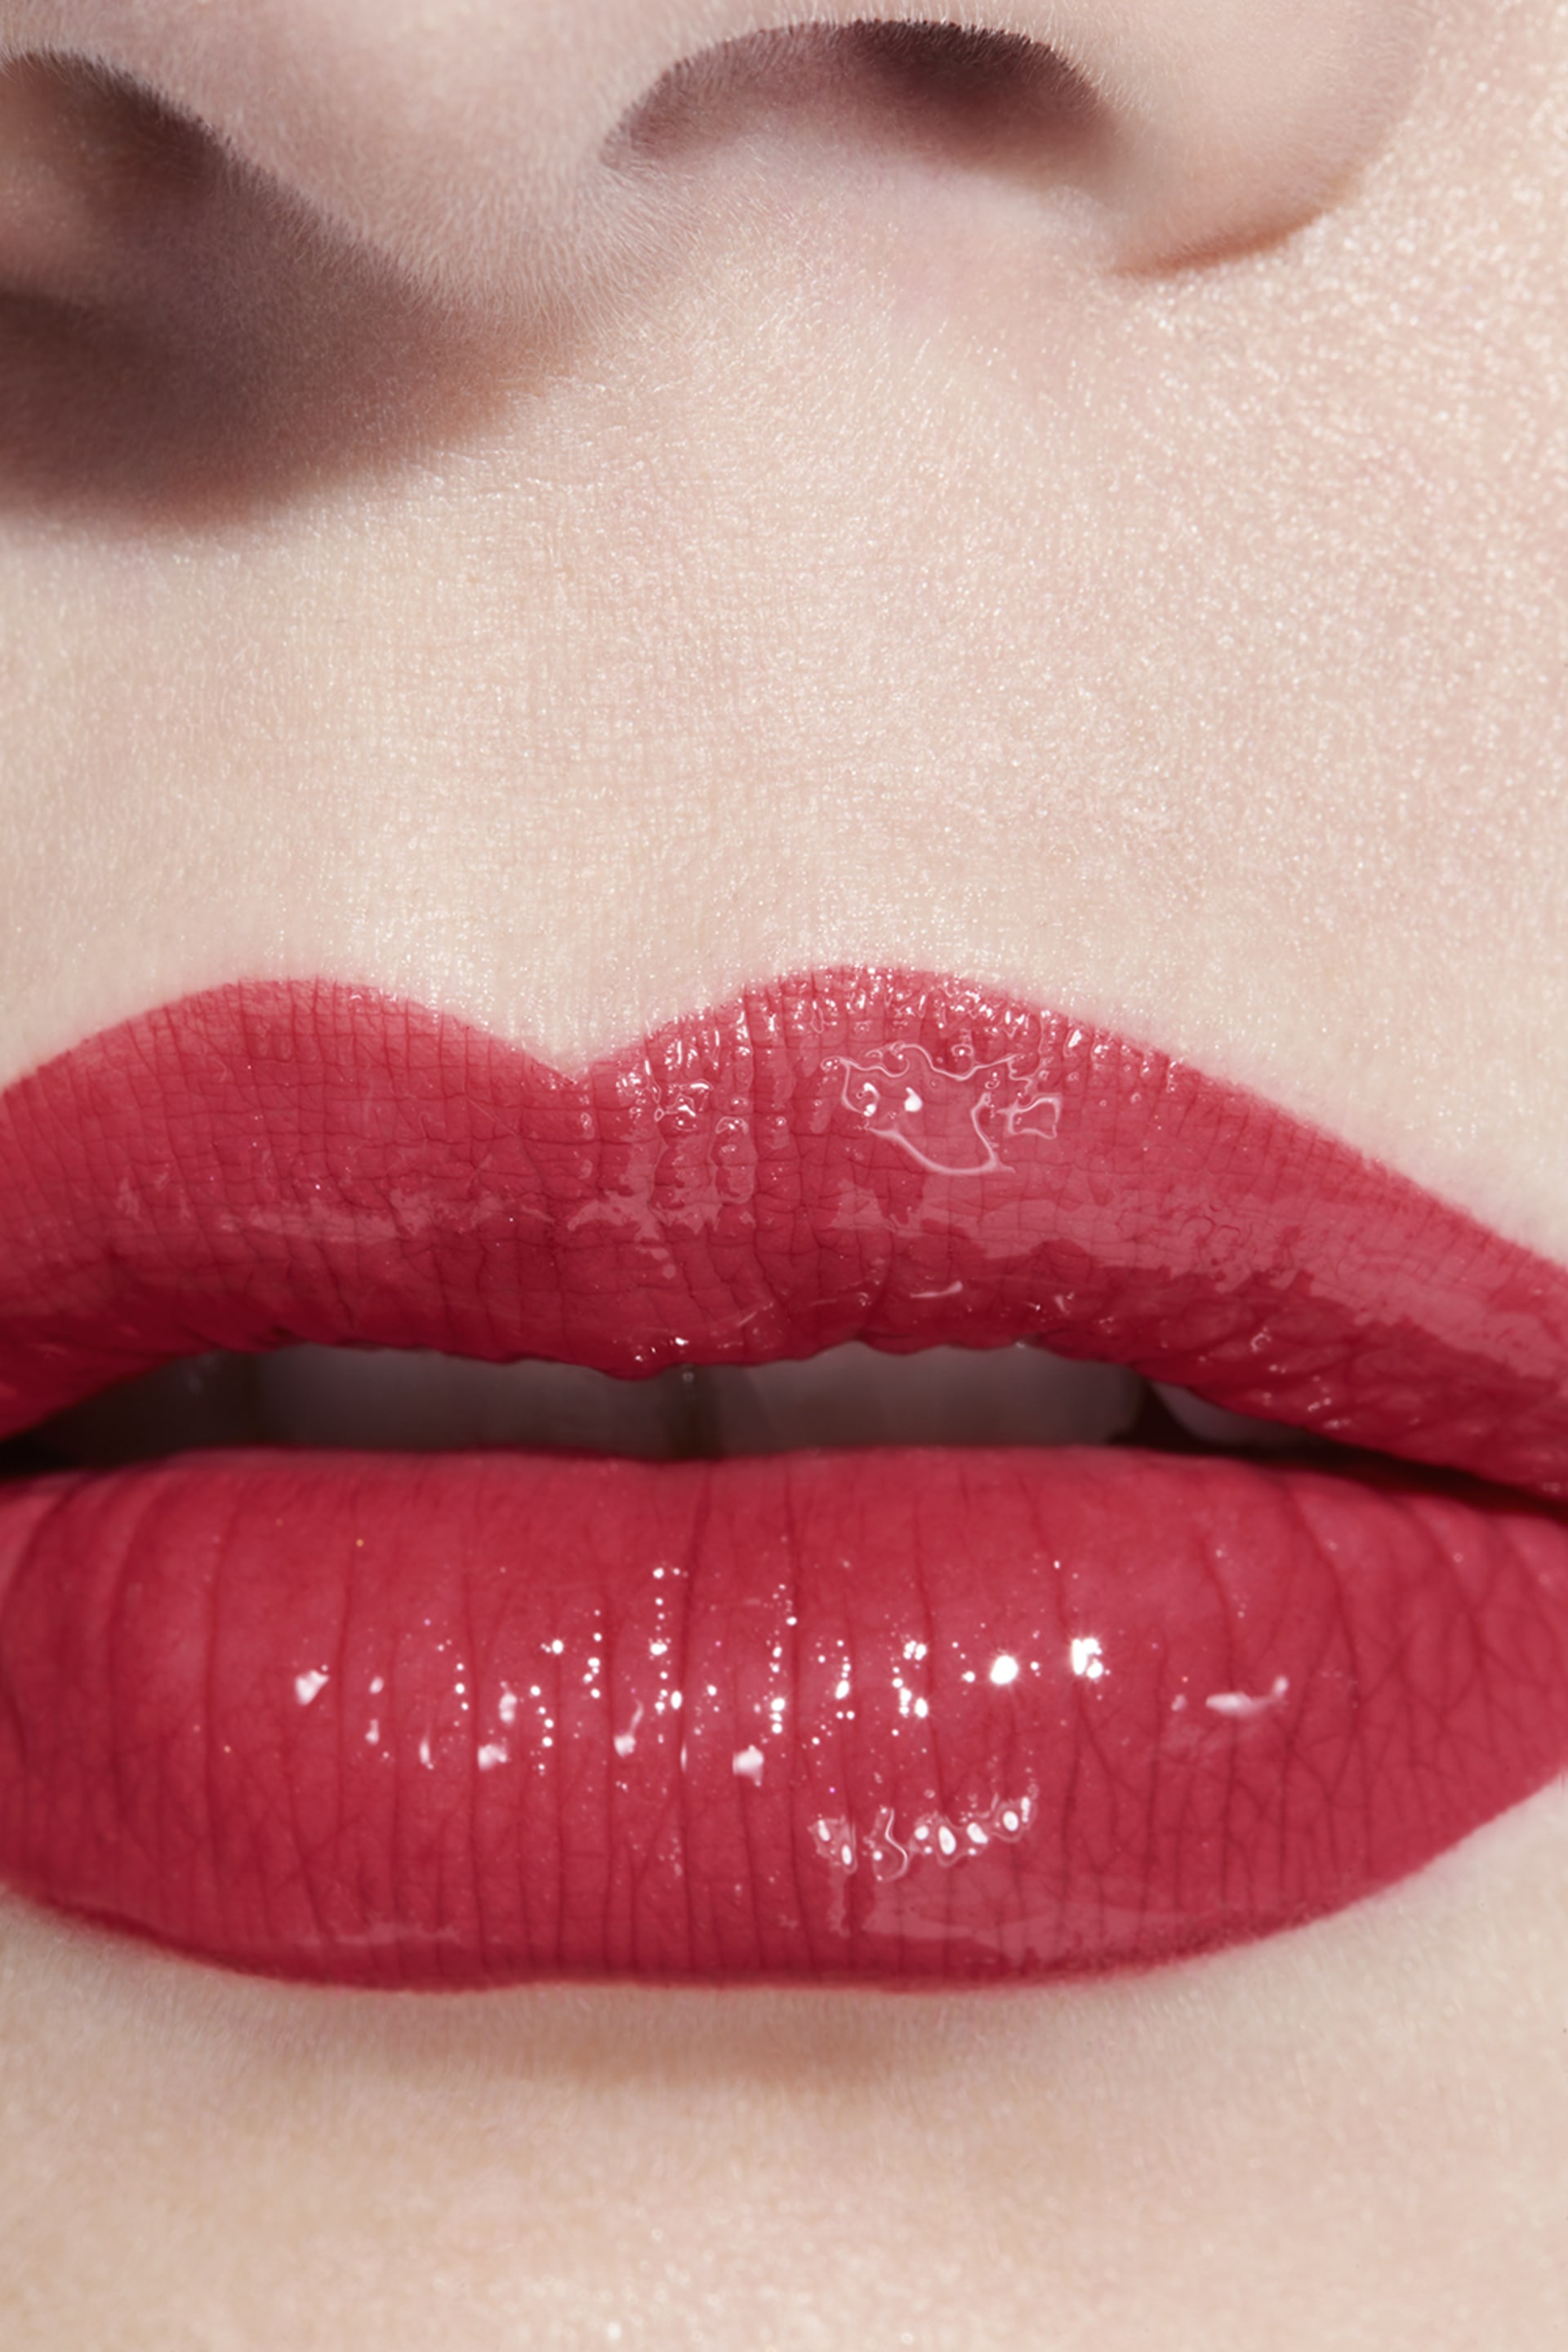 Application makeup visual 3 - LE ROUGE DUO ULTRA TENUE 122 - SOFT CORAL